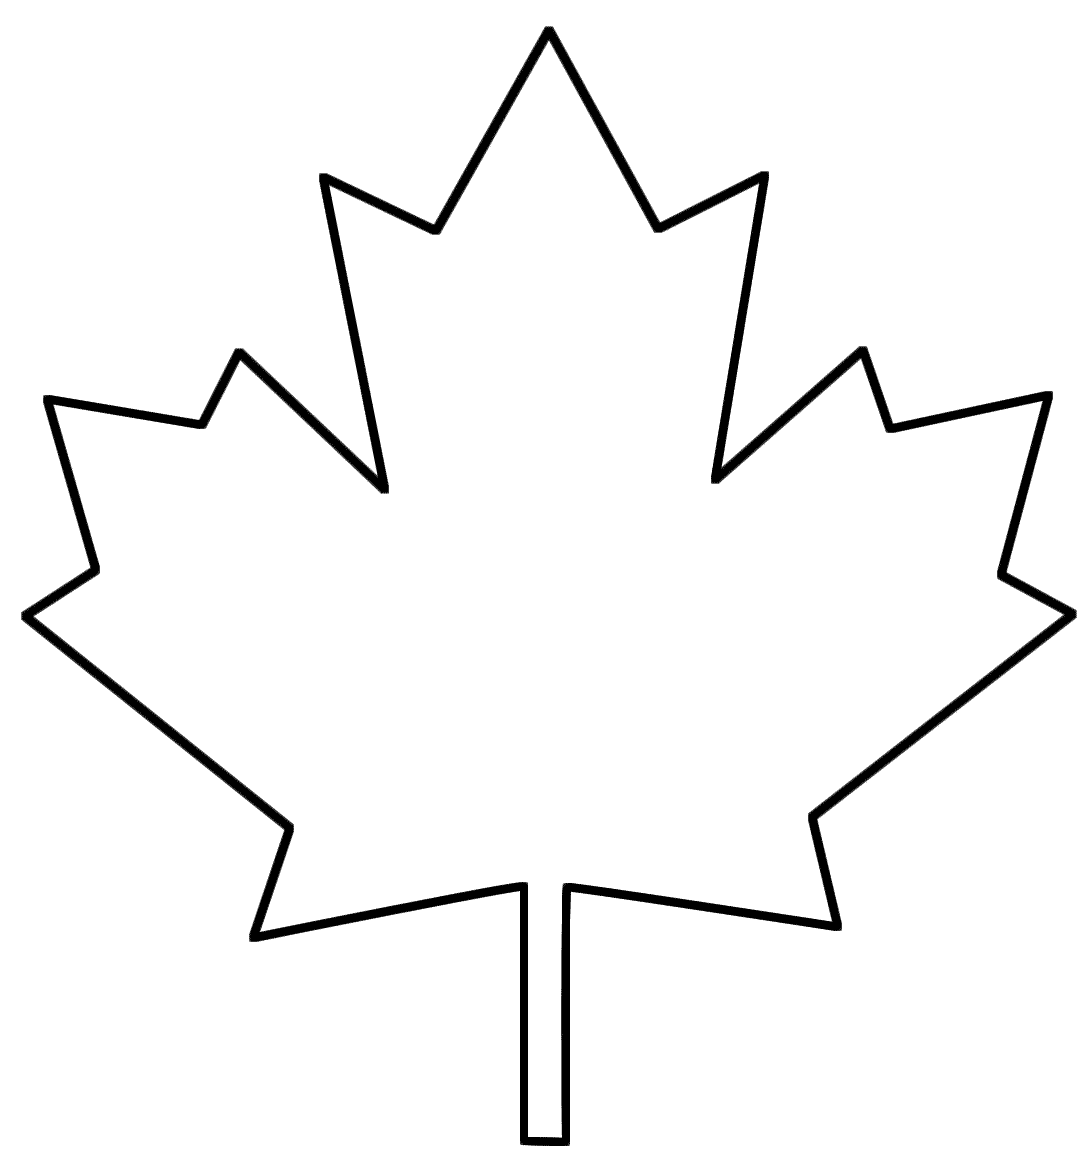 use this free maple leaf template to trace and cut paper leaves